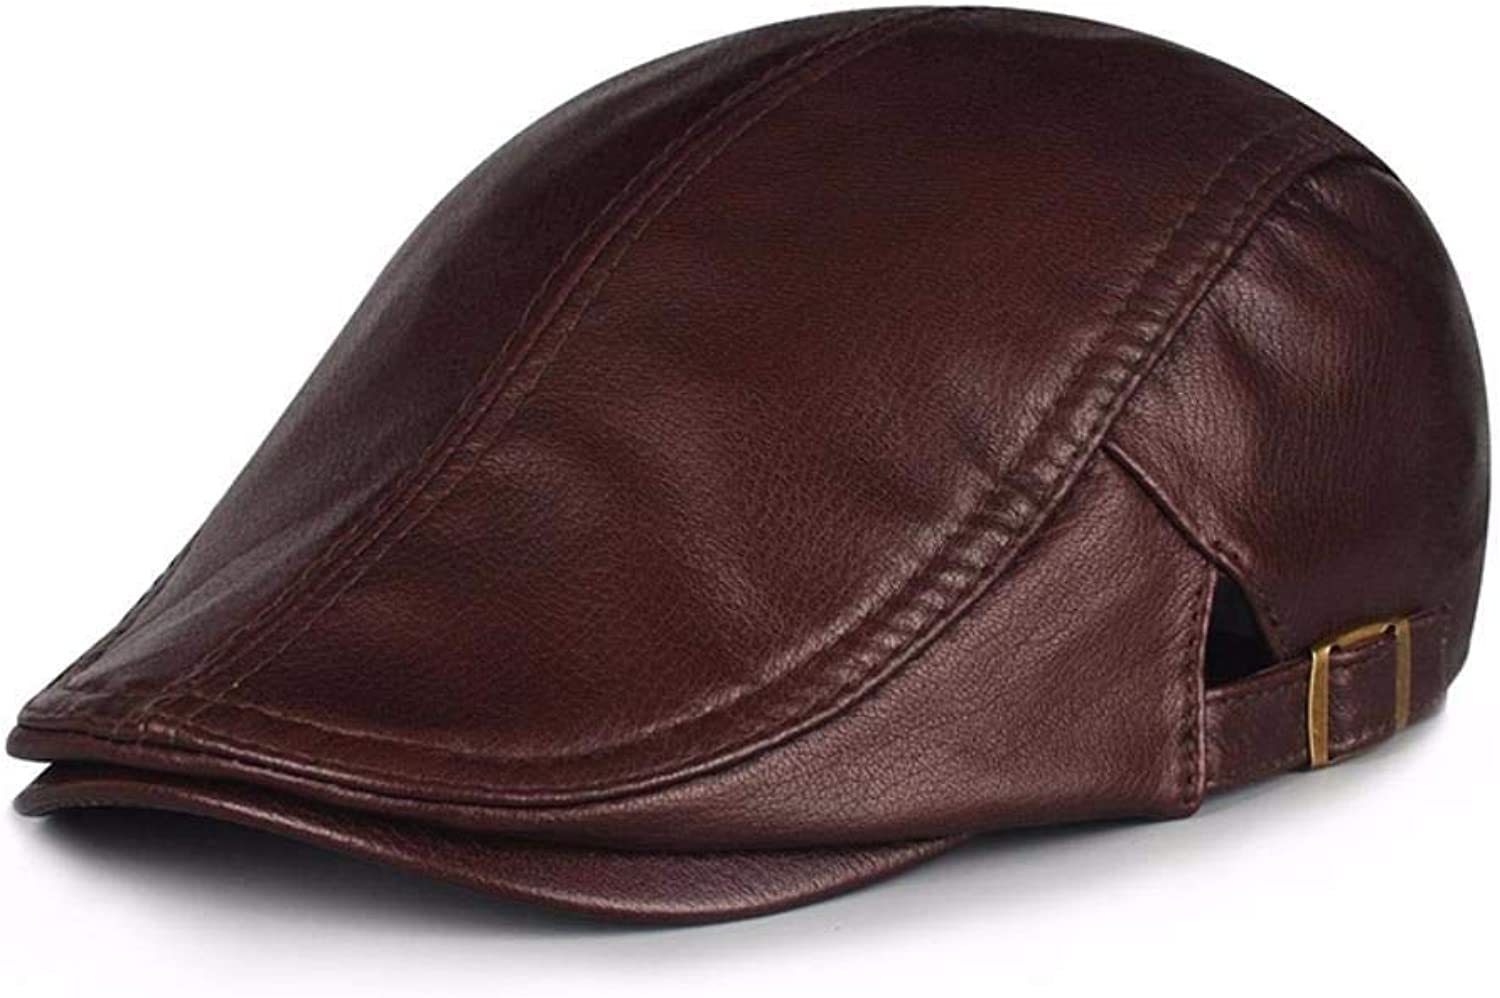 Chuiqingnet Men's and women's autumn and winter leather hat caps beret